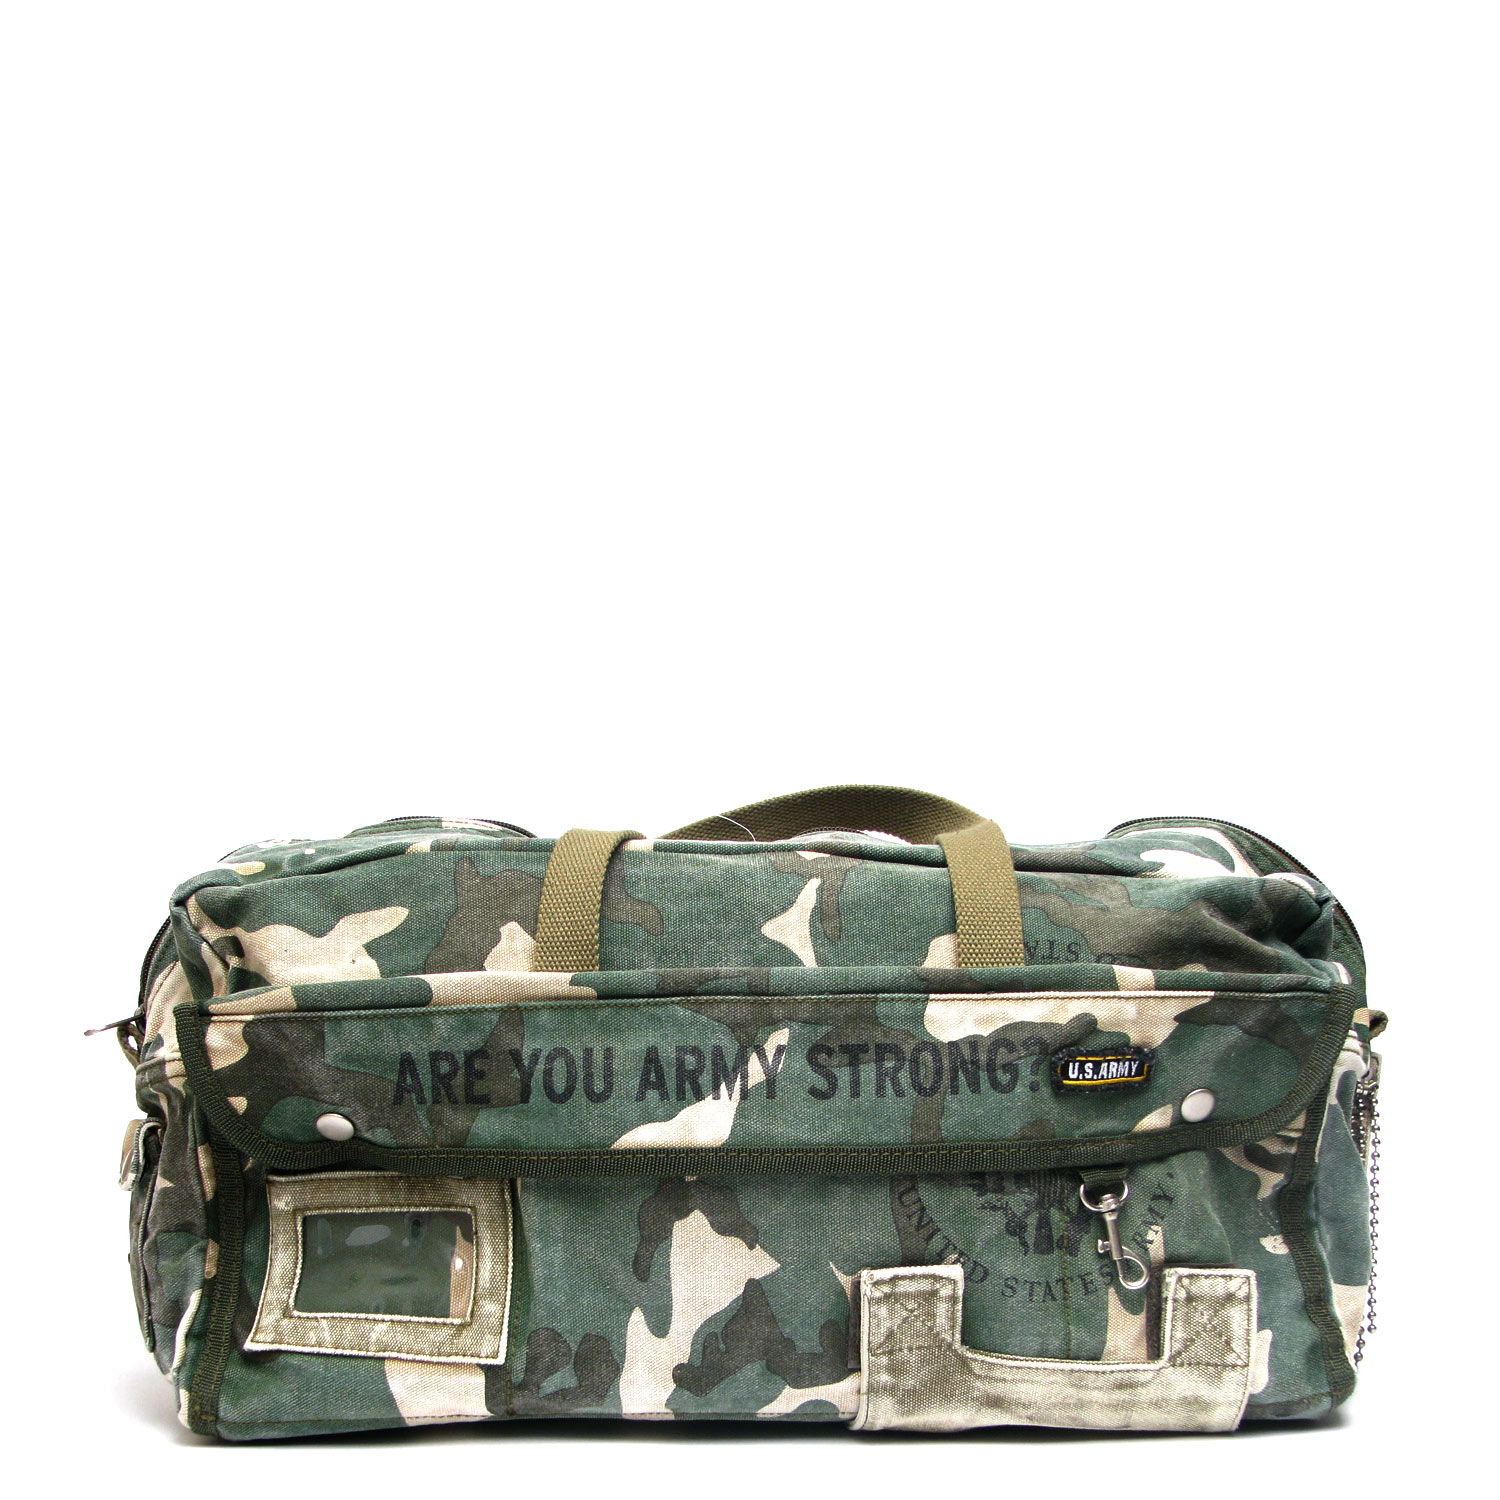 US Army Drum Duffle Bag – Camo